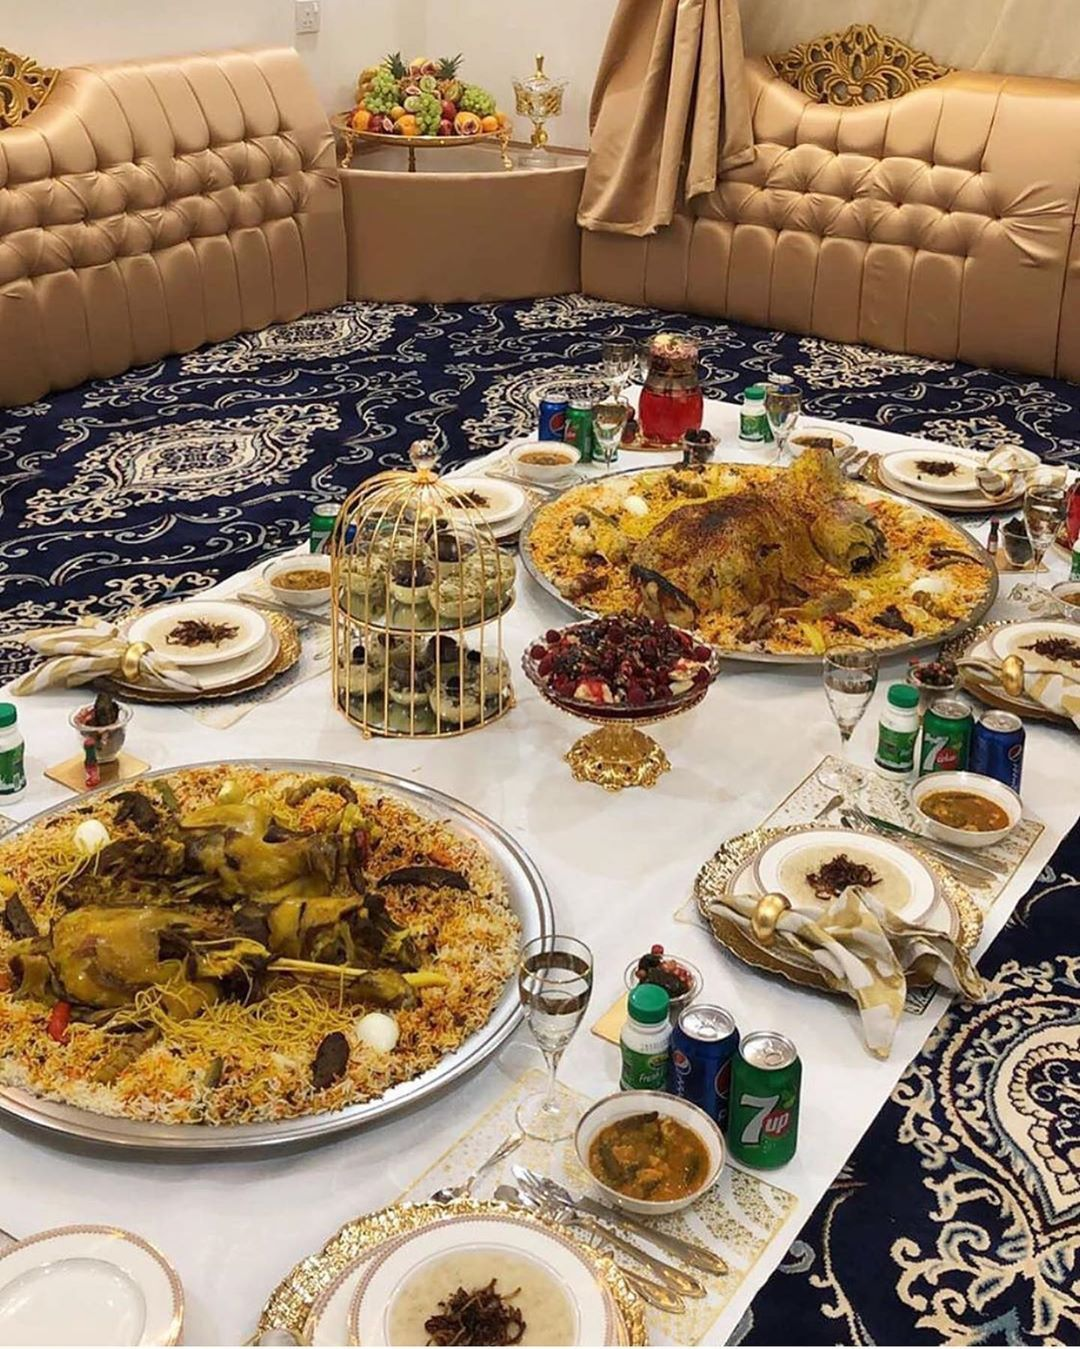 Pin By Tyfo Bahda On أطباق Serving Food Snap Food Traditional Food